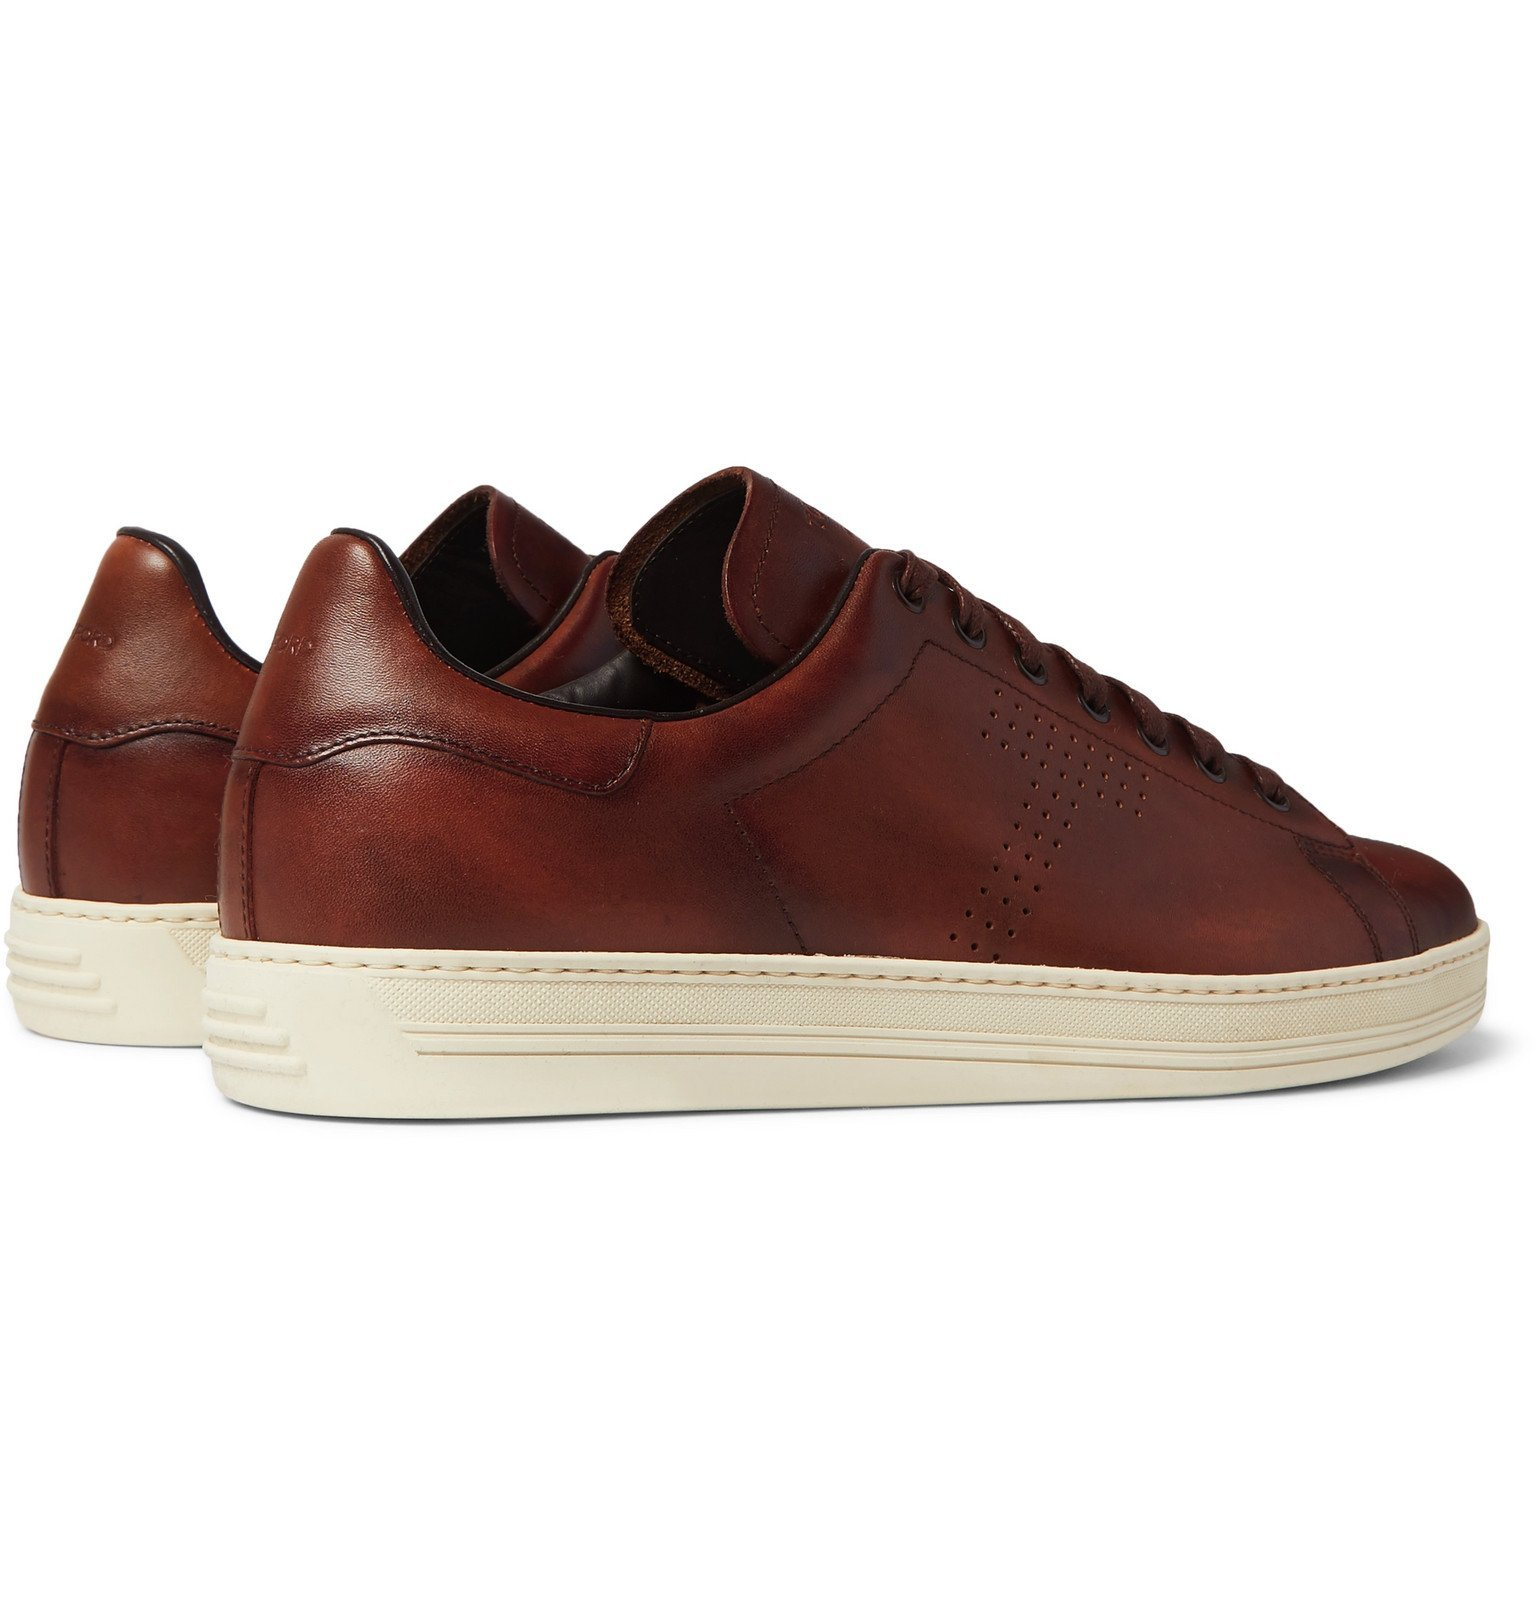 TOM FORD - Warwick Perforated Leather Sneakers - Brown